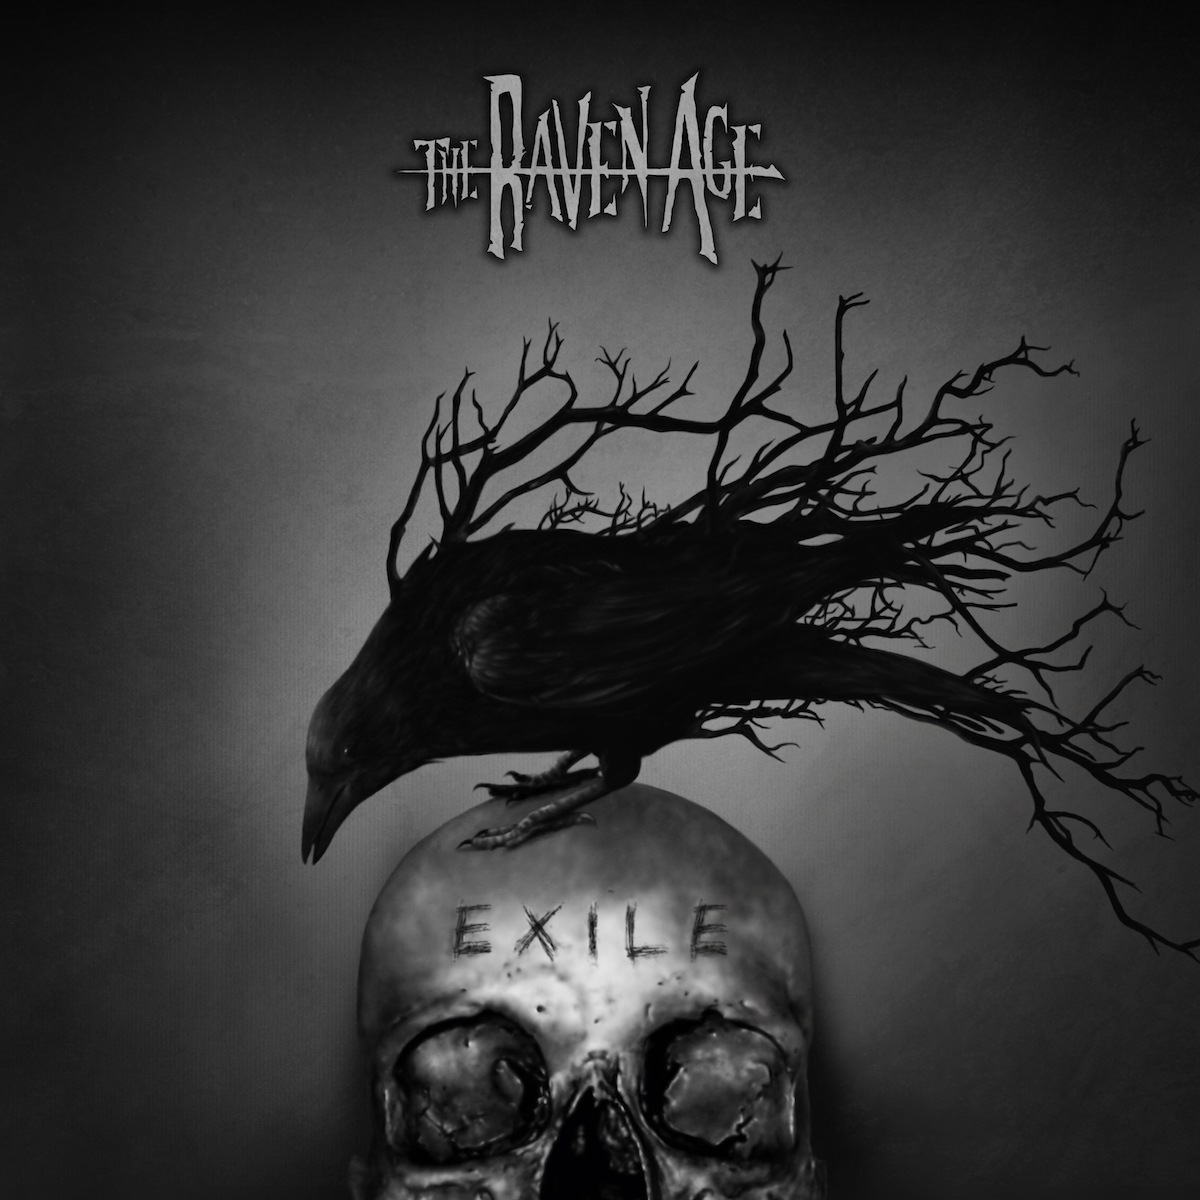 Review: The Raven Age – Exile